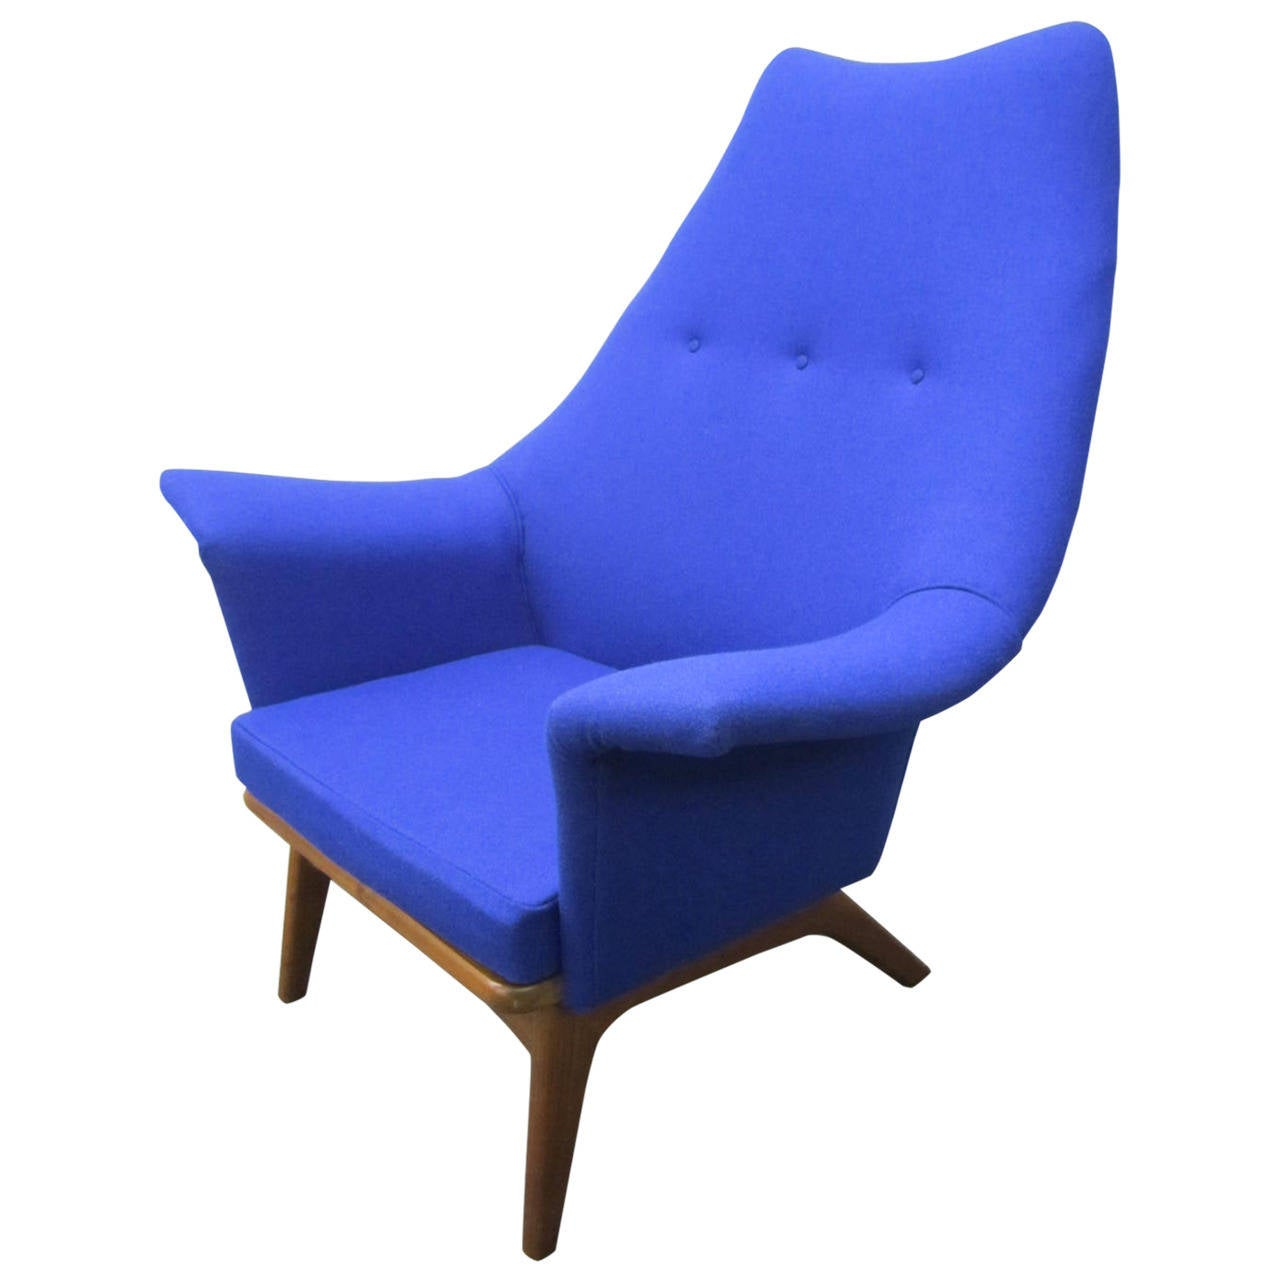 Excellent Adrian Pearsall Sculptural Walnut Wingback